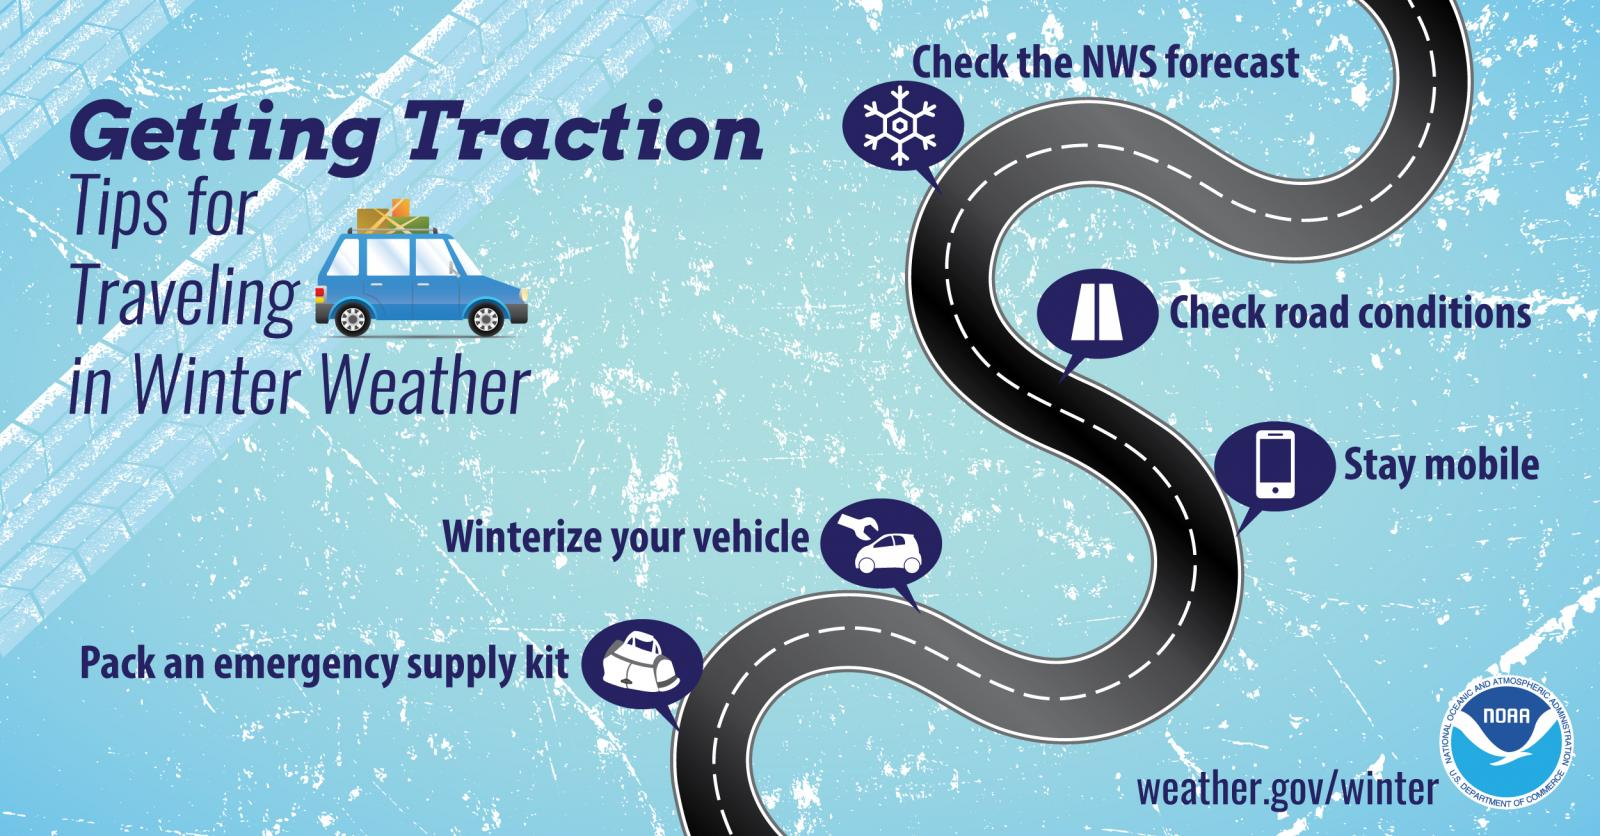 Winter Travel Safety Reminders